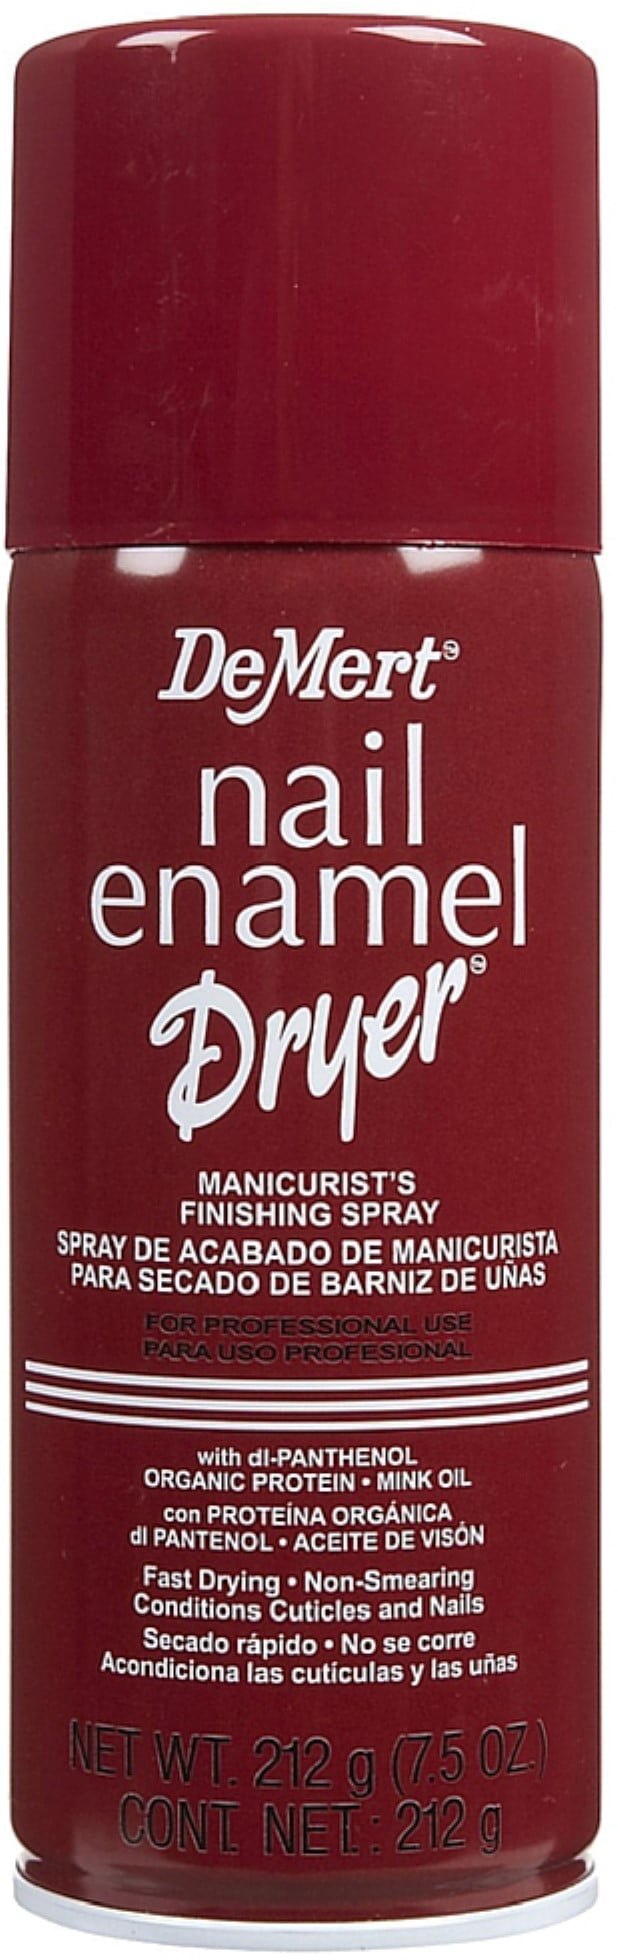 De Mert Brands DeMert Nail Enamel Dryer 75 Oz